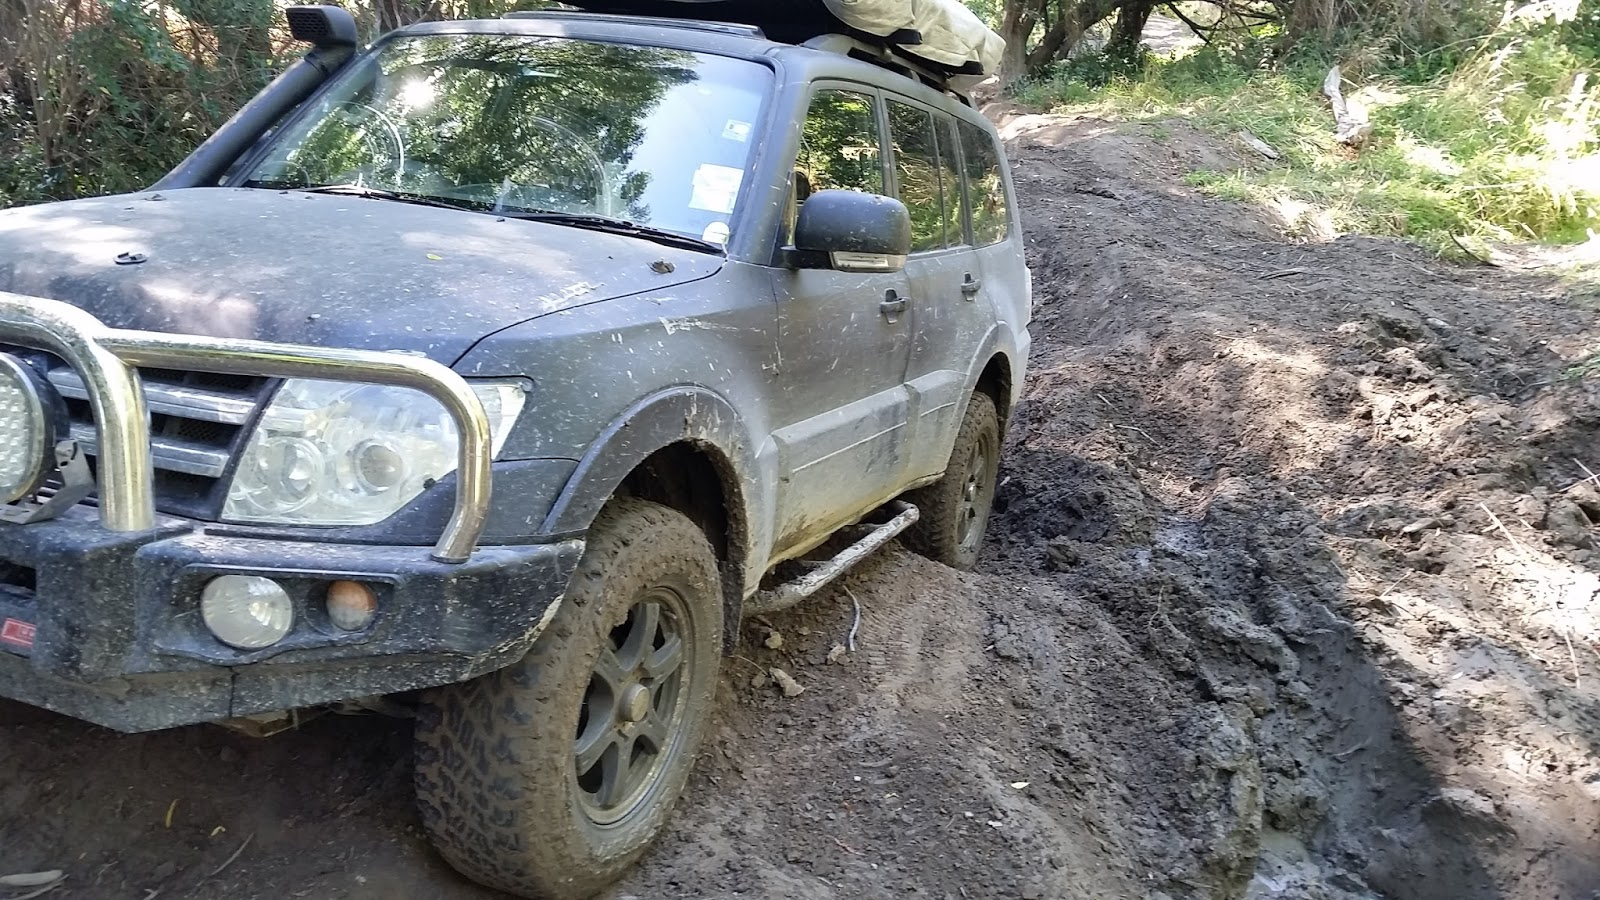 Since the Shogun came to New Zealand     - Pajero 4WD Club